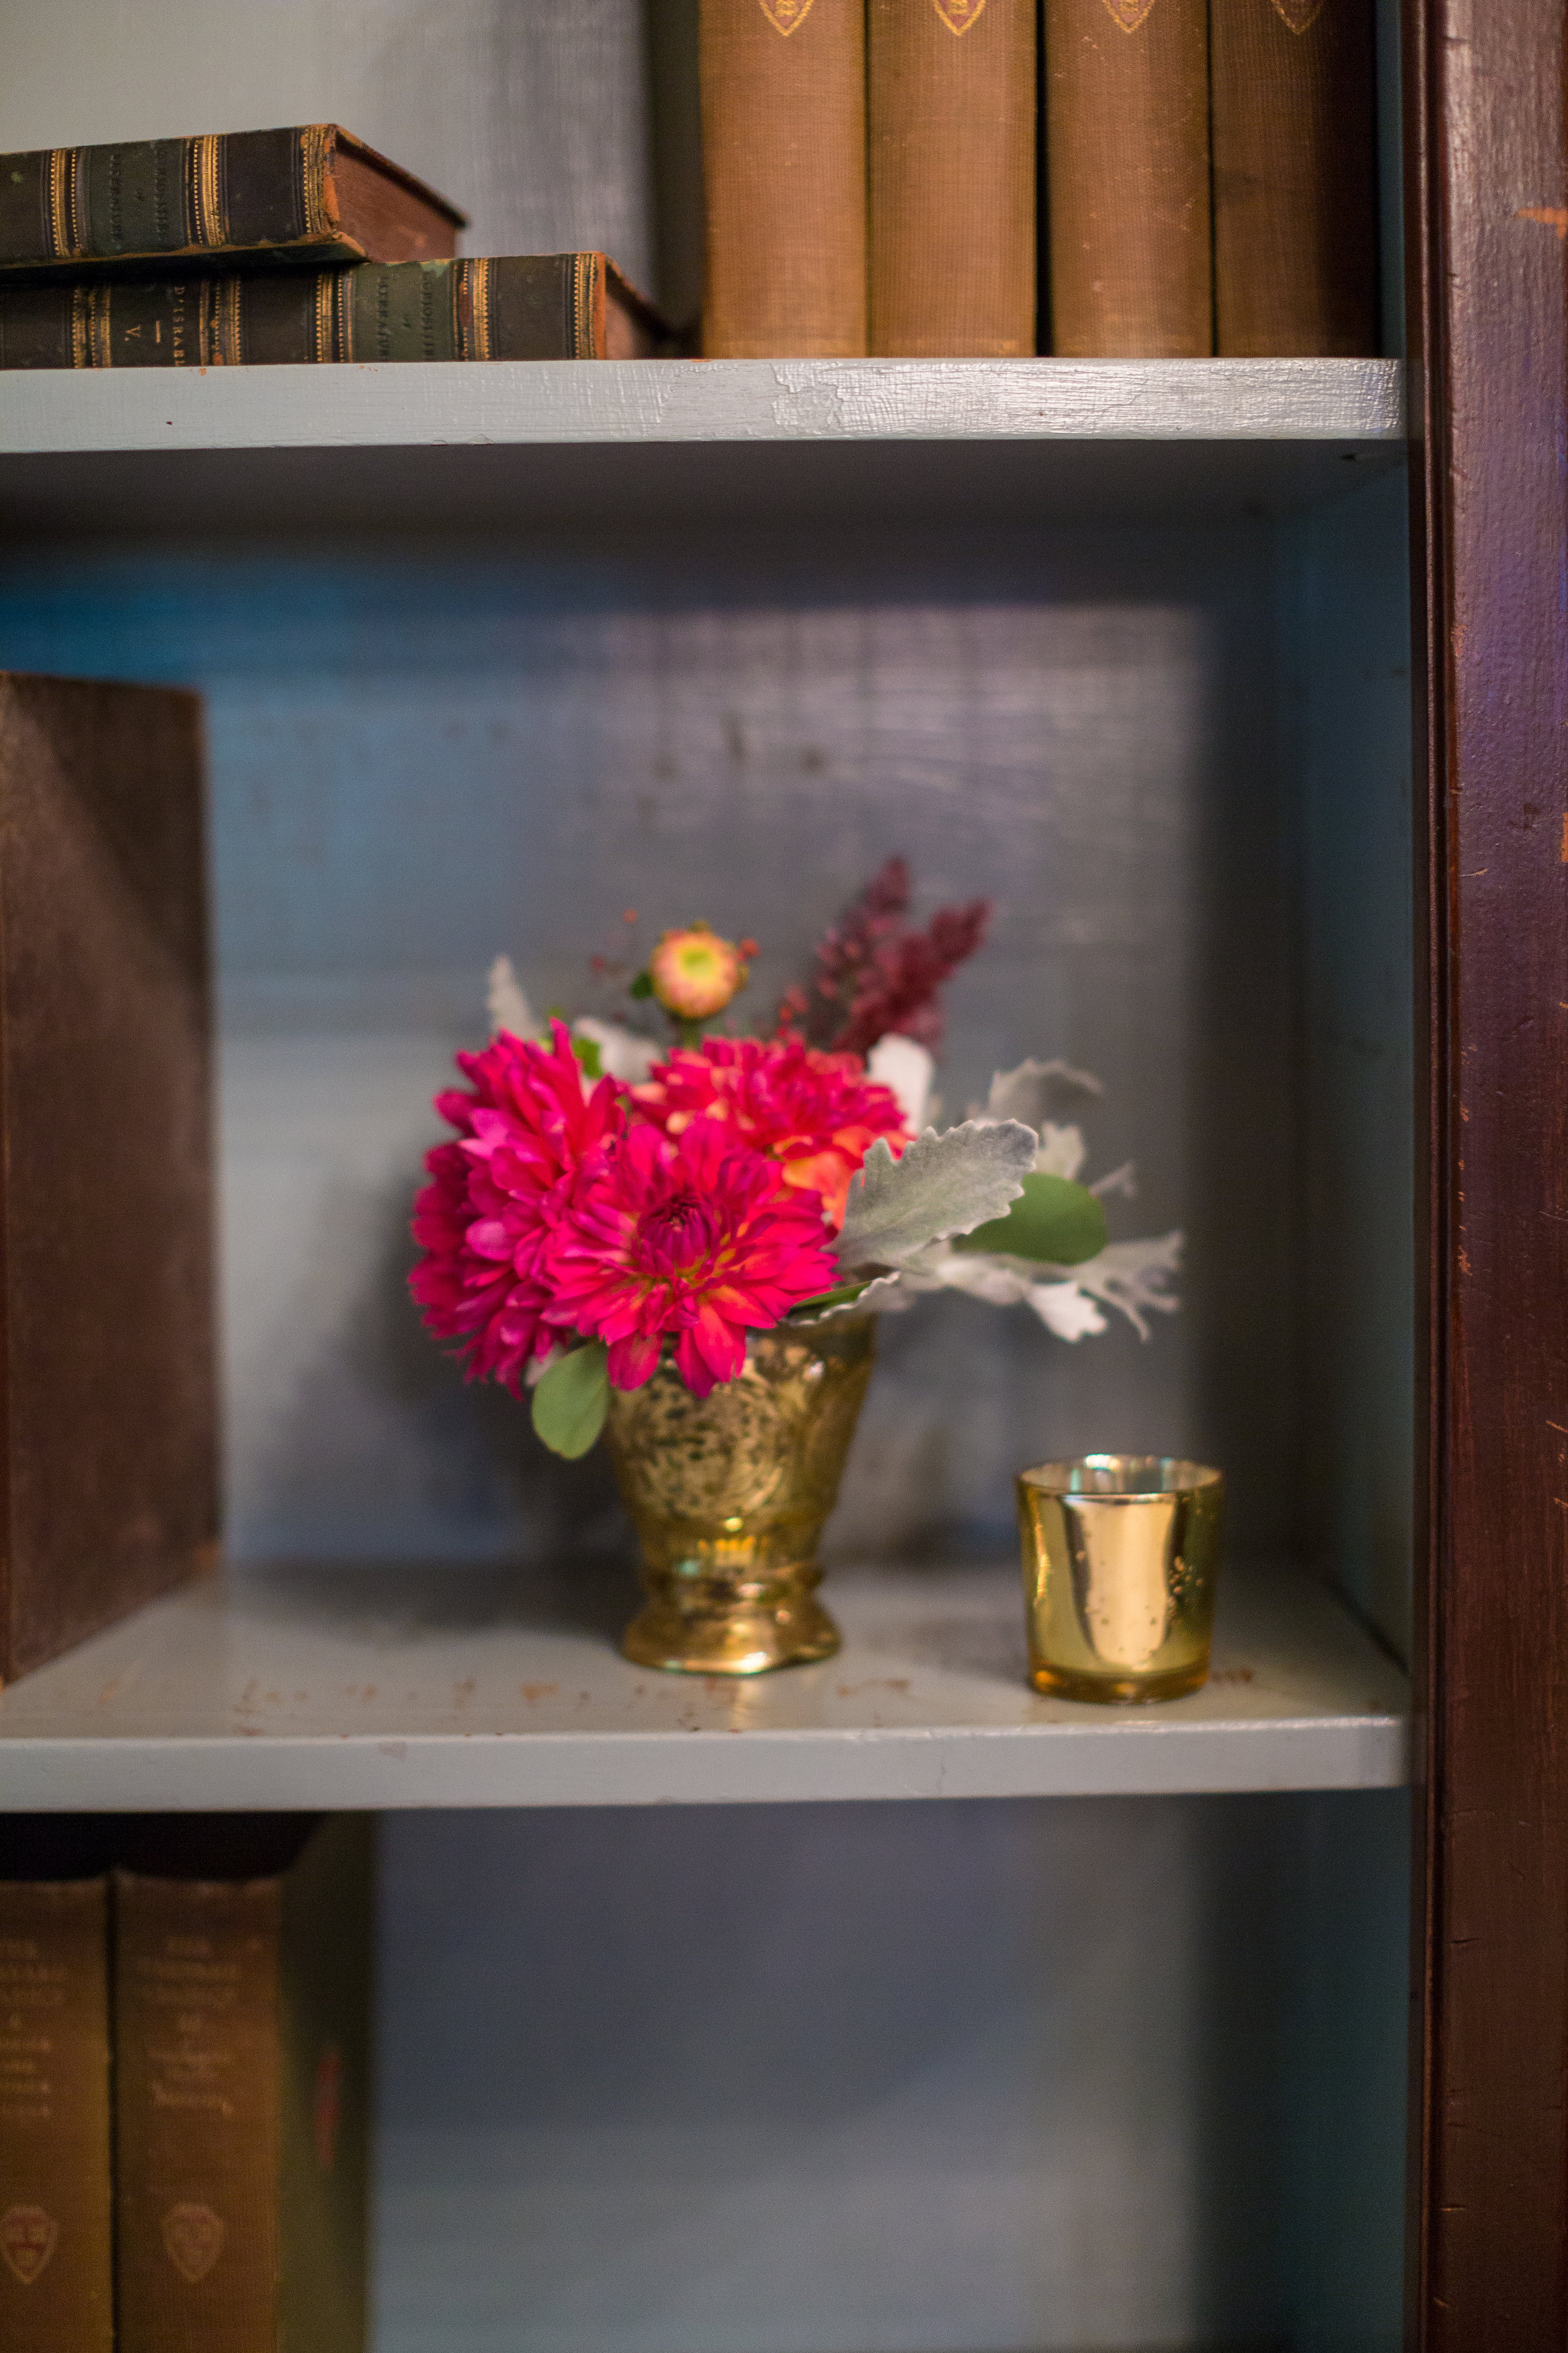 Ever nook, cranny, crevice and available space was filled with touches of flowers.